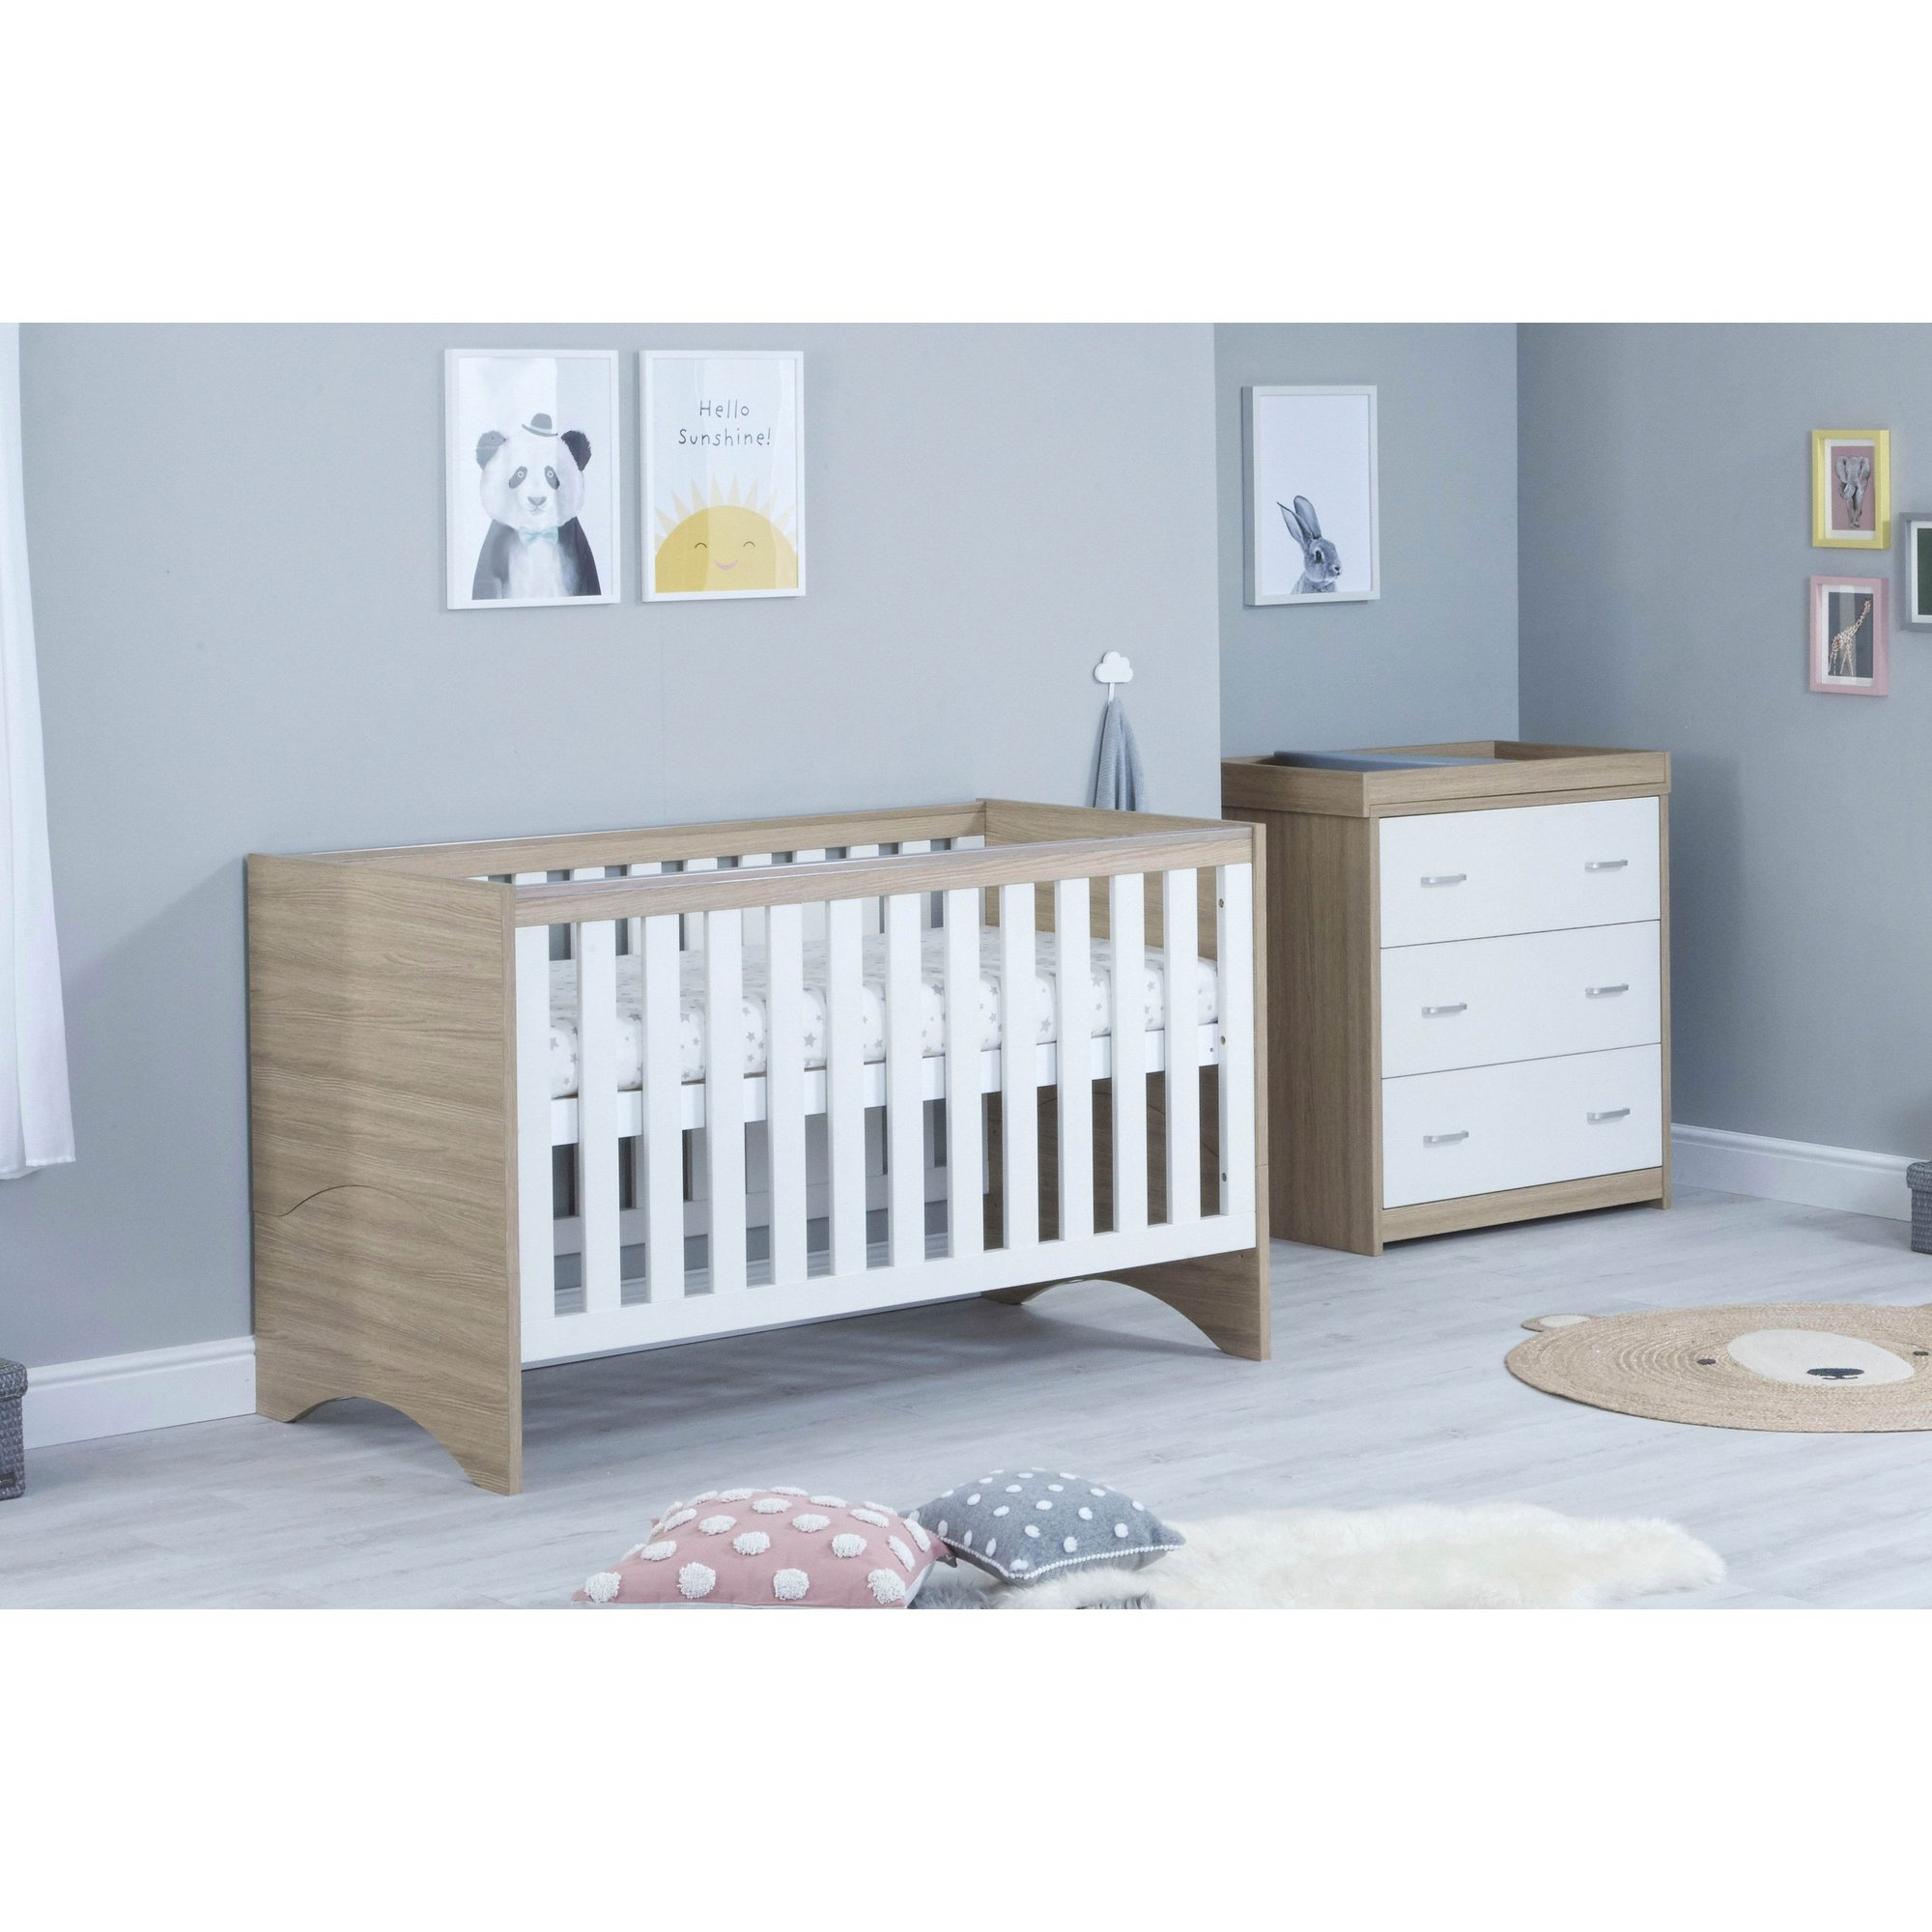 Image of 2 Piece Veni White Oak Cot Bed and Chest Room Set